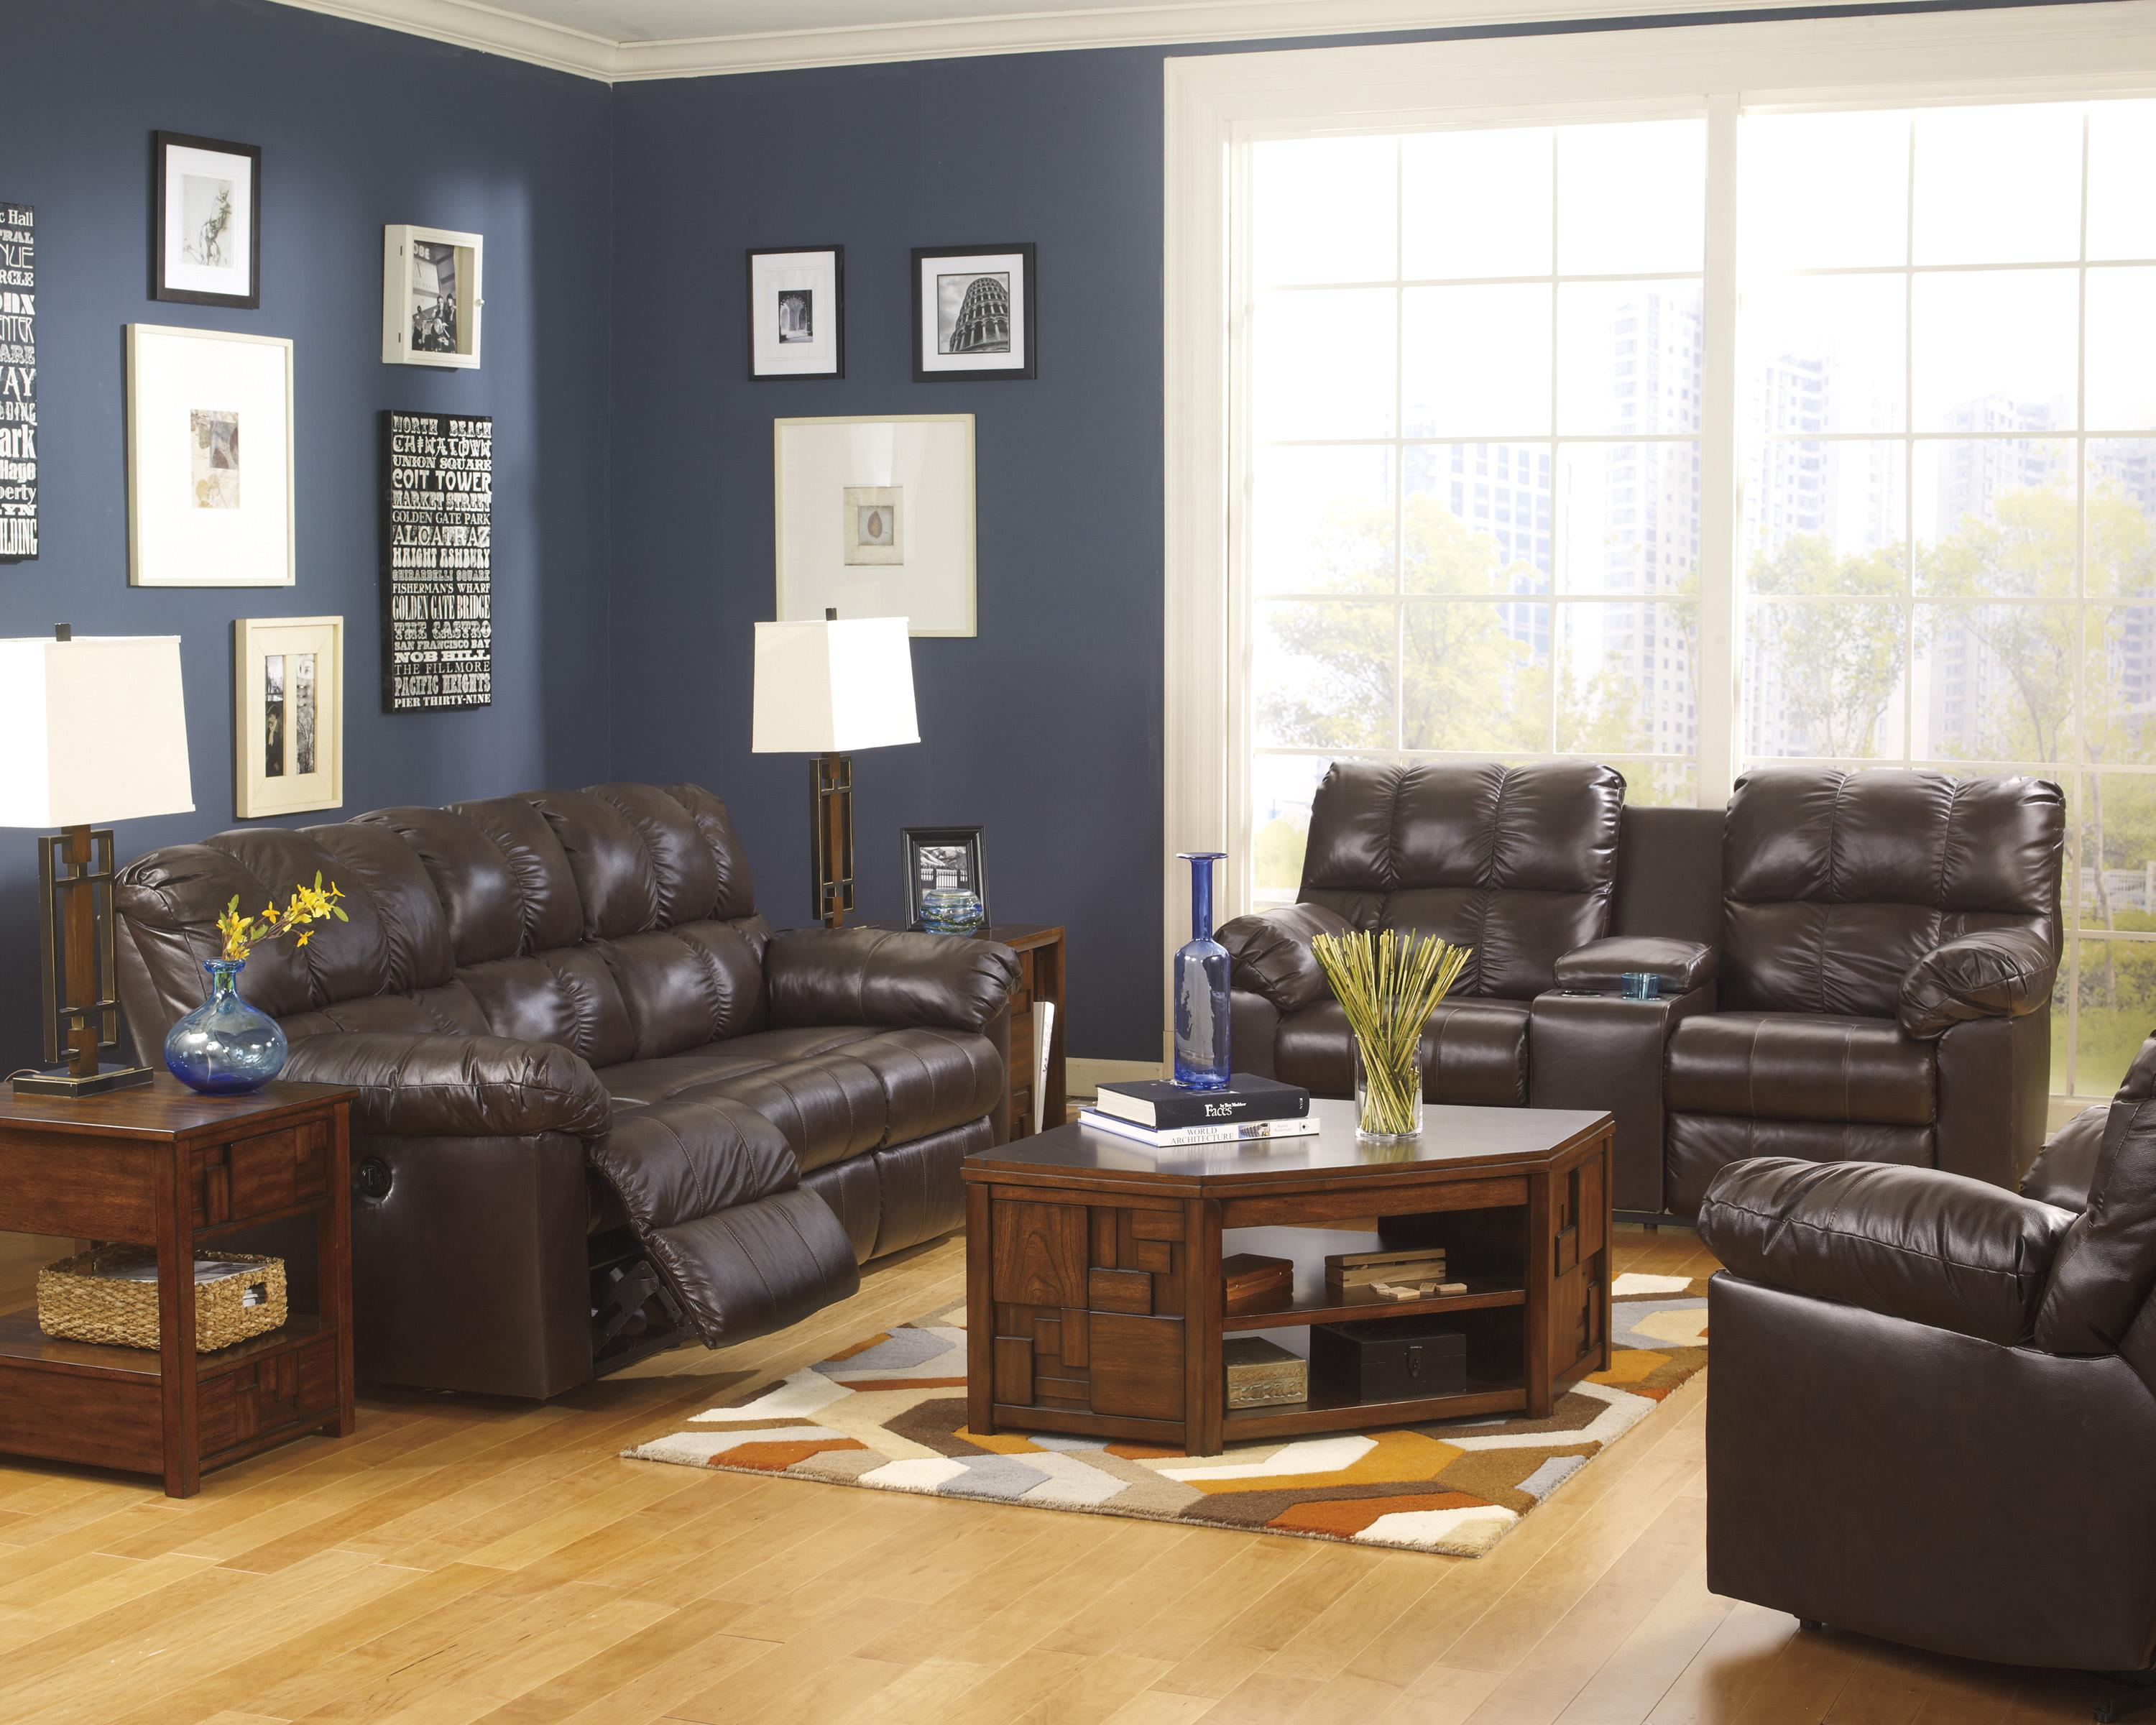 Signature Design by Ashley Kennard - Chocolate Reclining Living Room Group - Item Number: 29001 Living Room Group 6